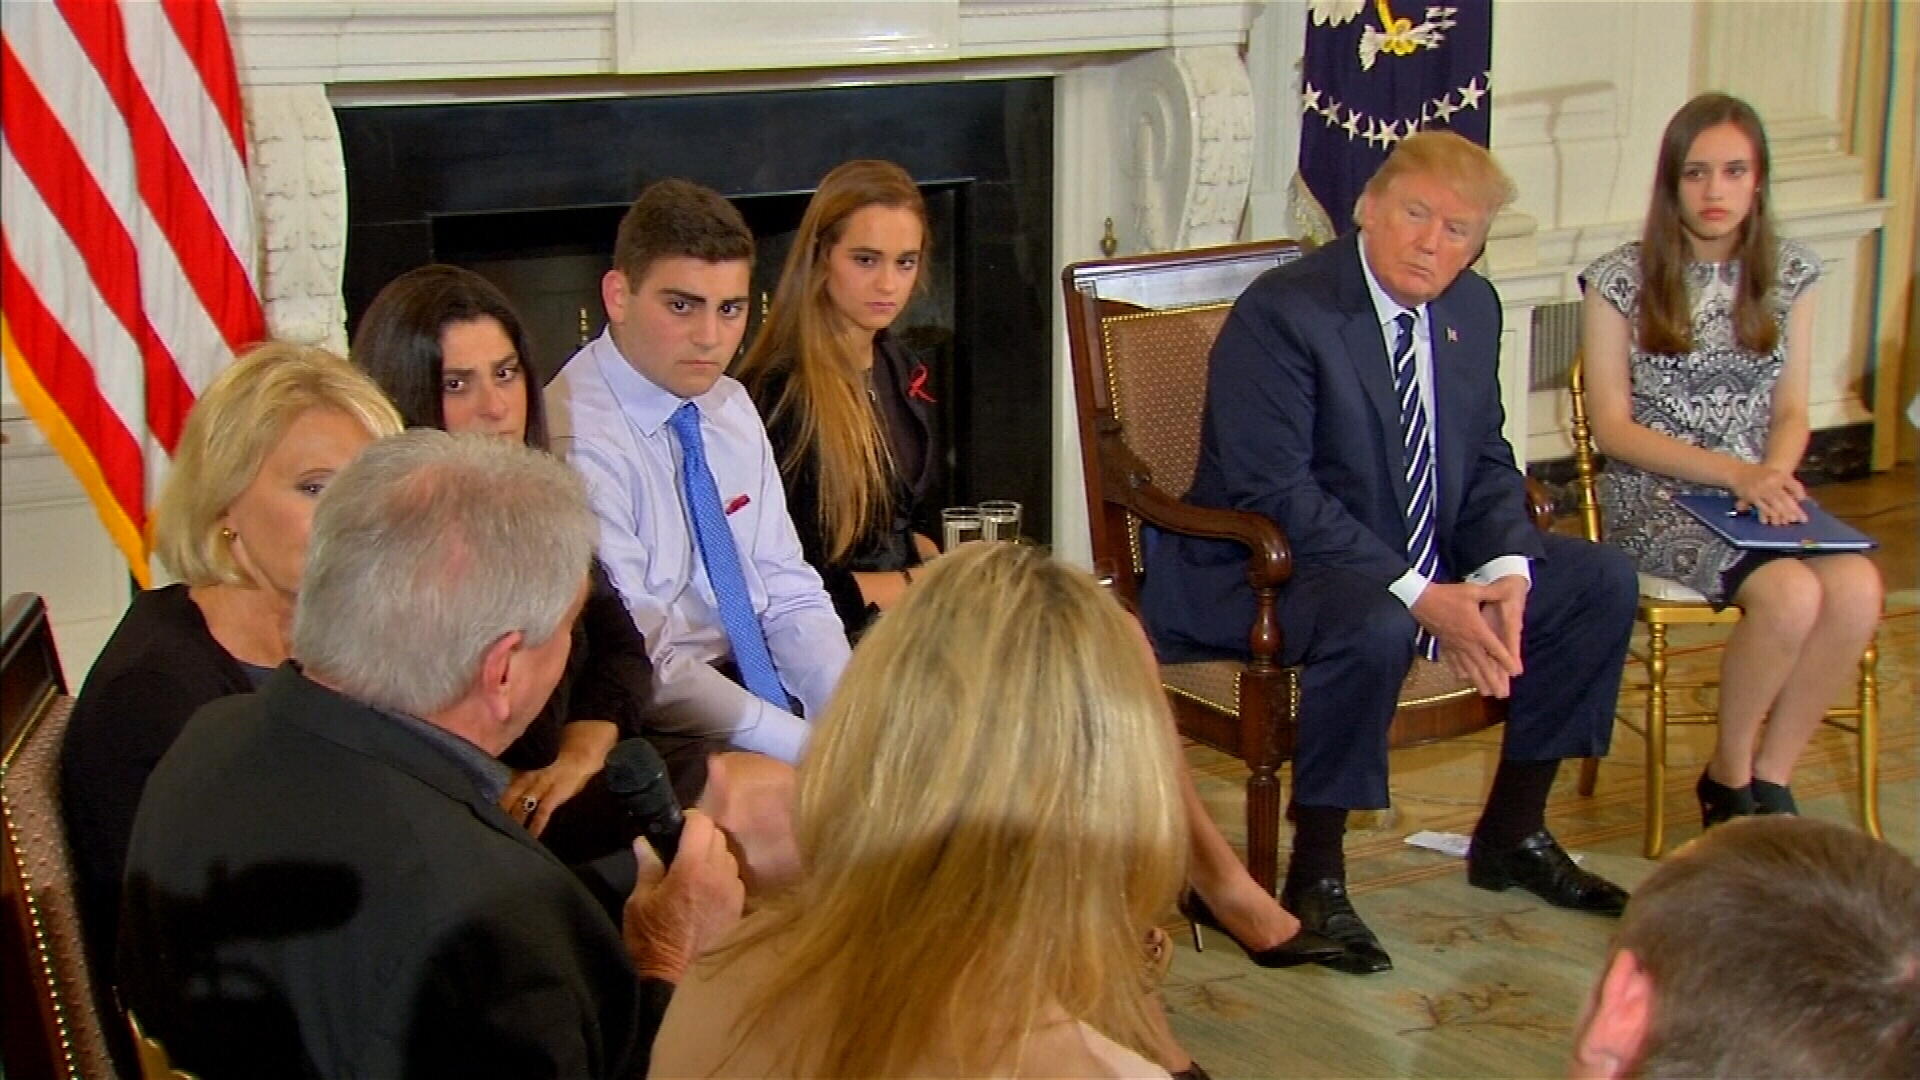 Trump meets with school shooting survivors